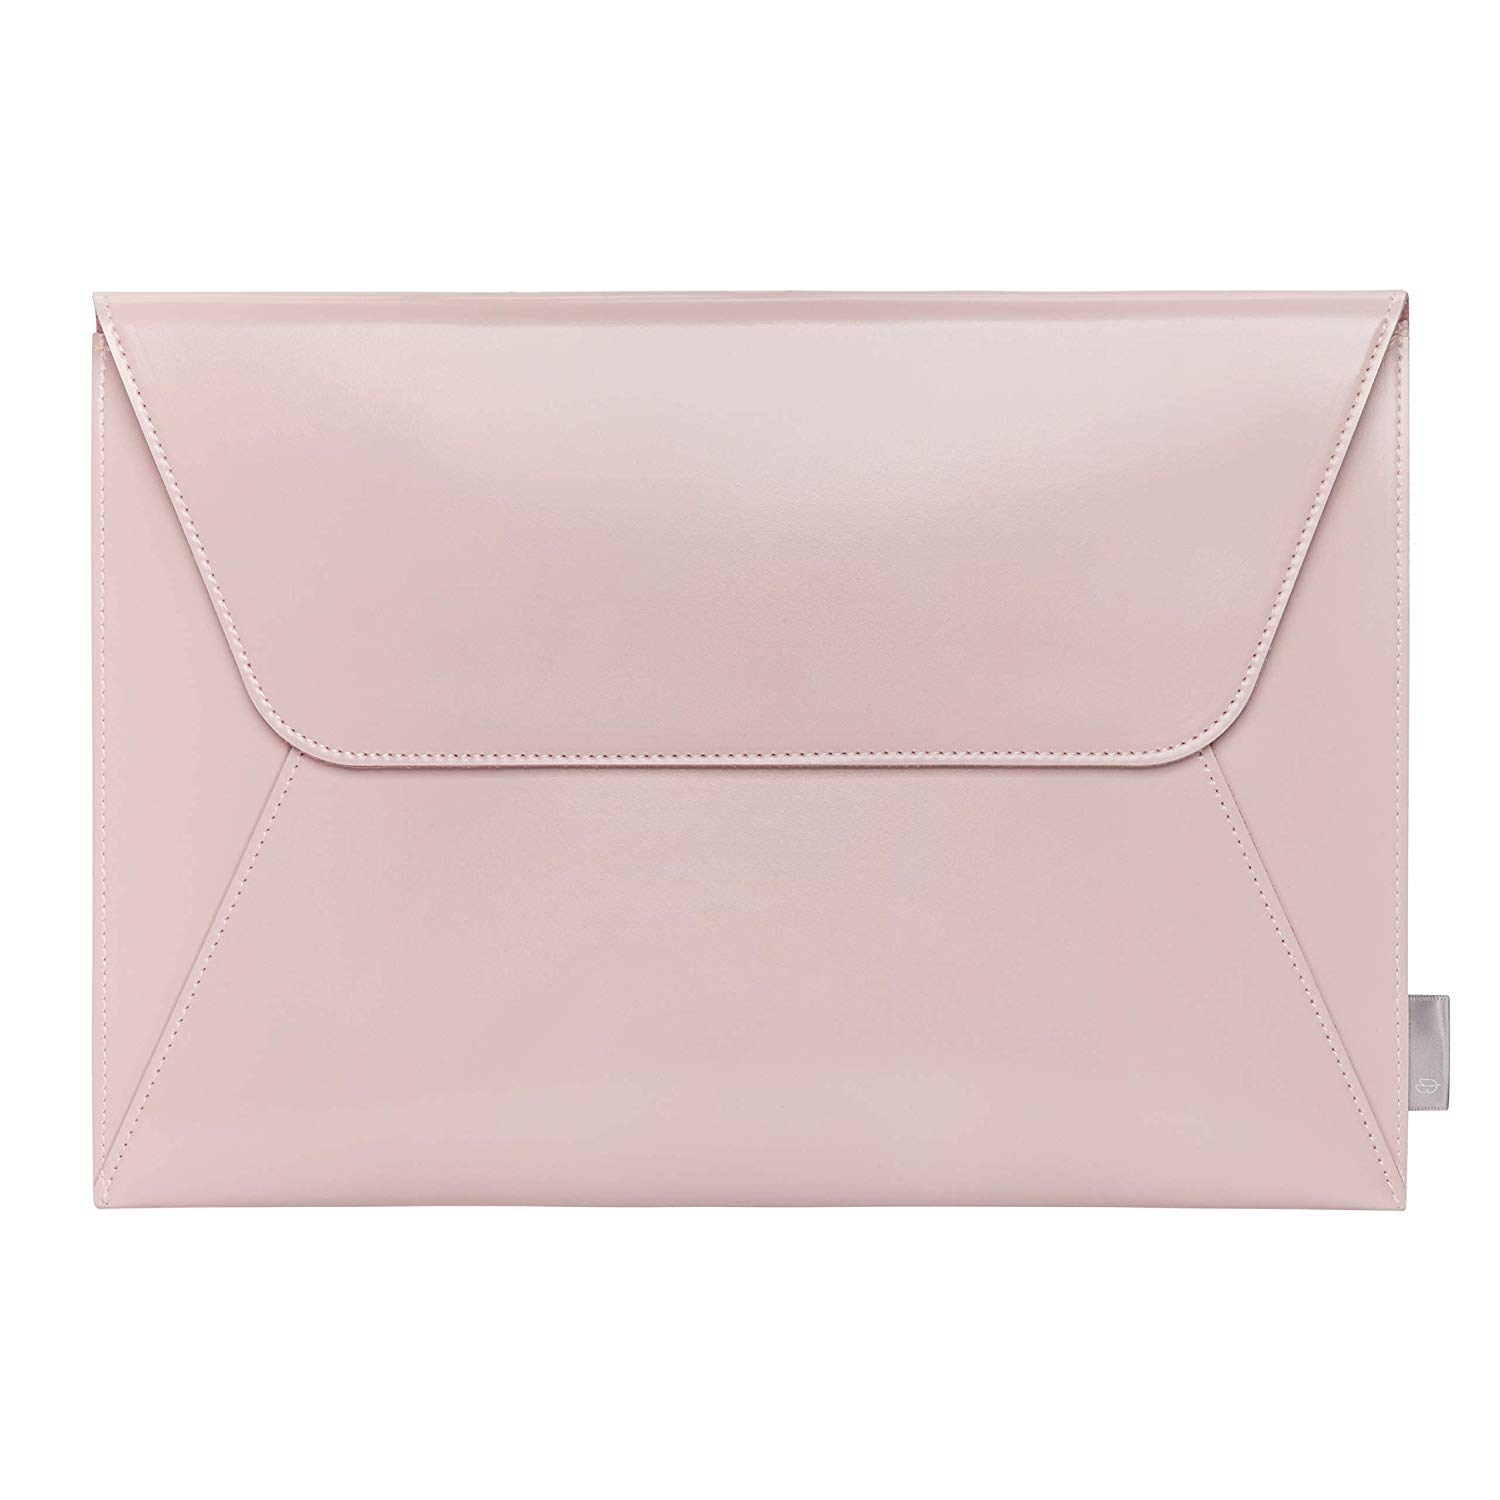 Comfyable Leather Laptop Sleeve 13-13.3 Inch for MacBook Pro & MacBook Air - PU Leather Envelope Sleeve Notebook Computer Case for Mac - Pink